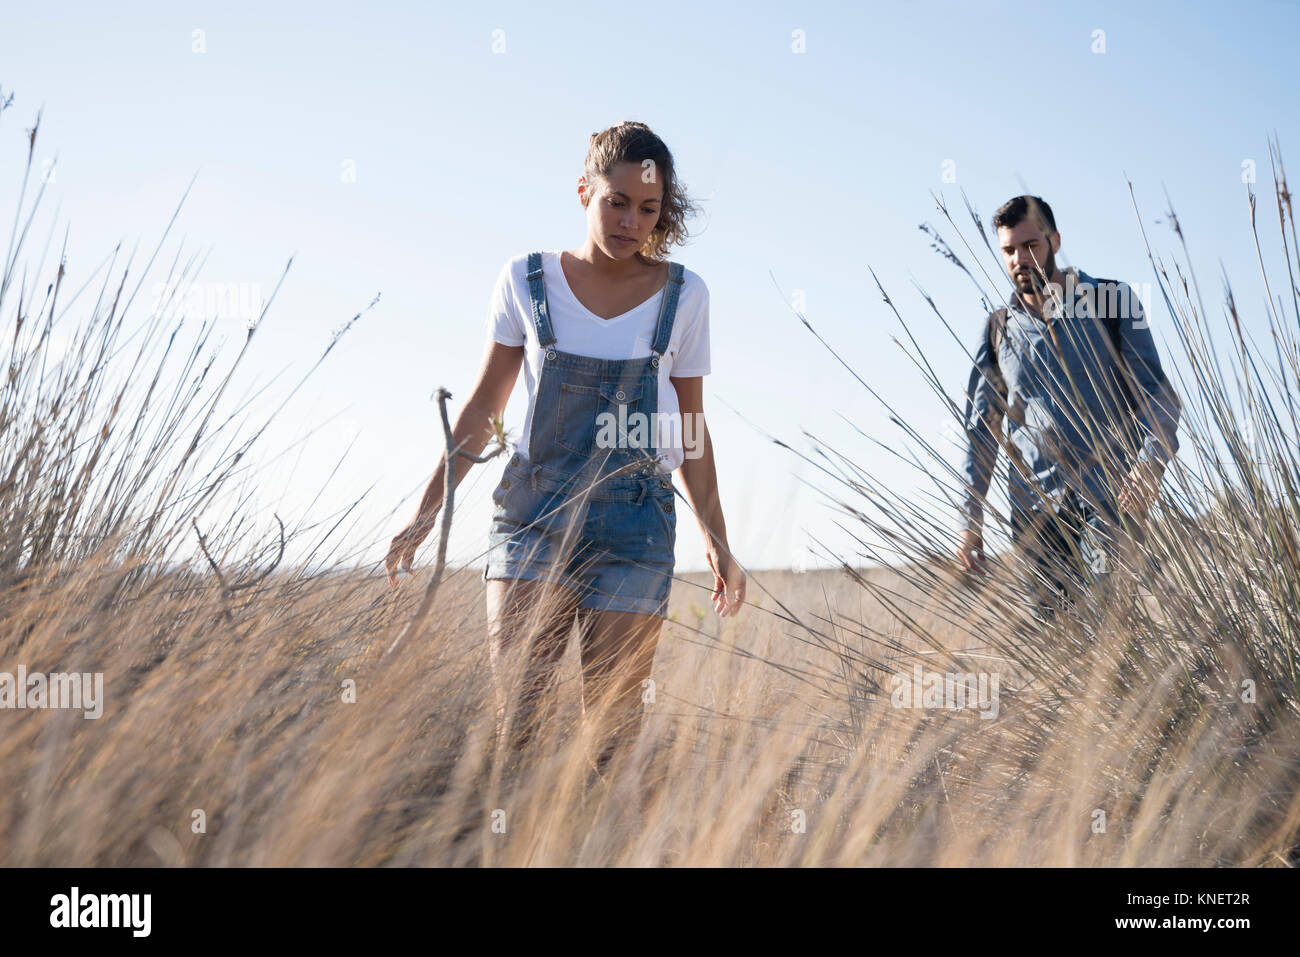 Young hiking couple hiking through long grass, Las Palmas, Canary Islands, Spain - Stock Image